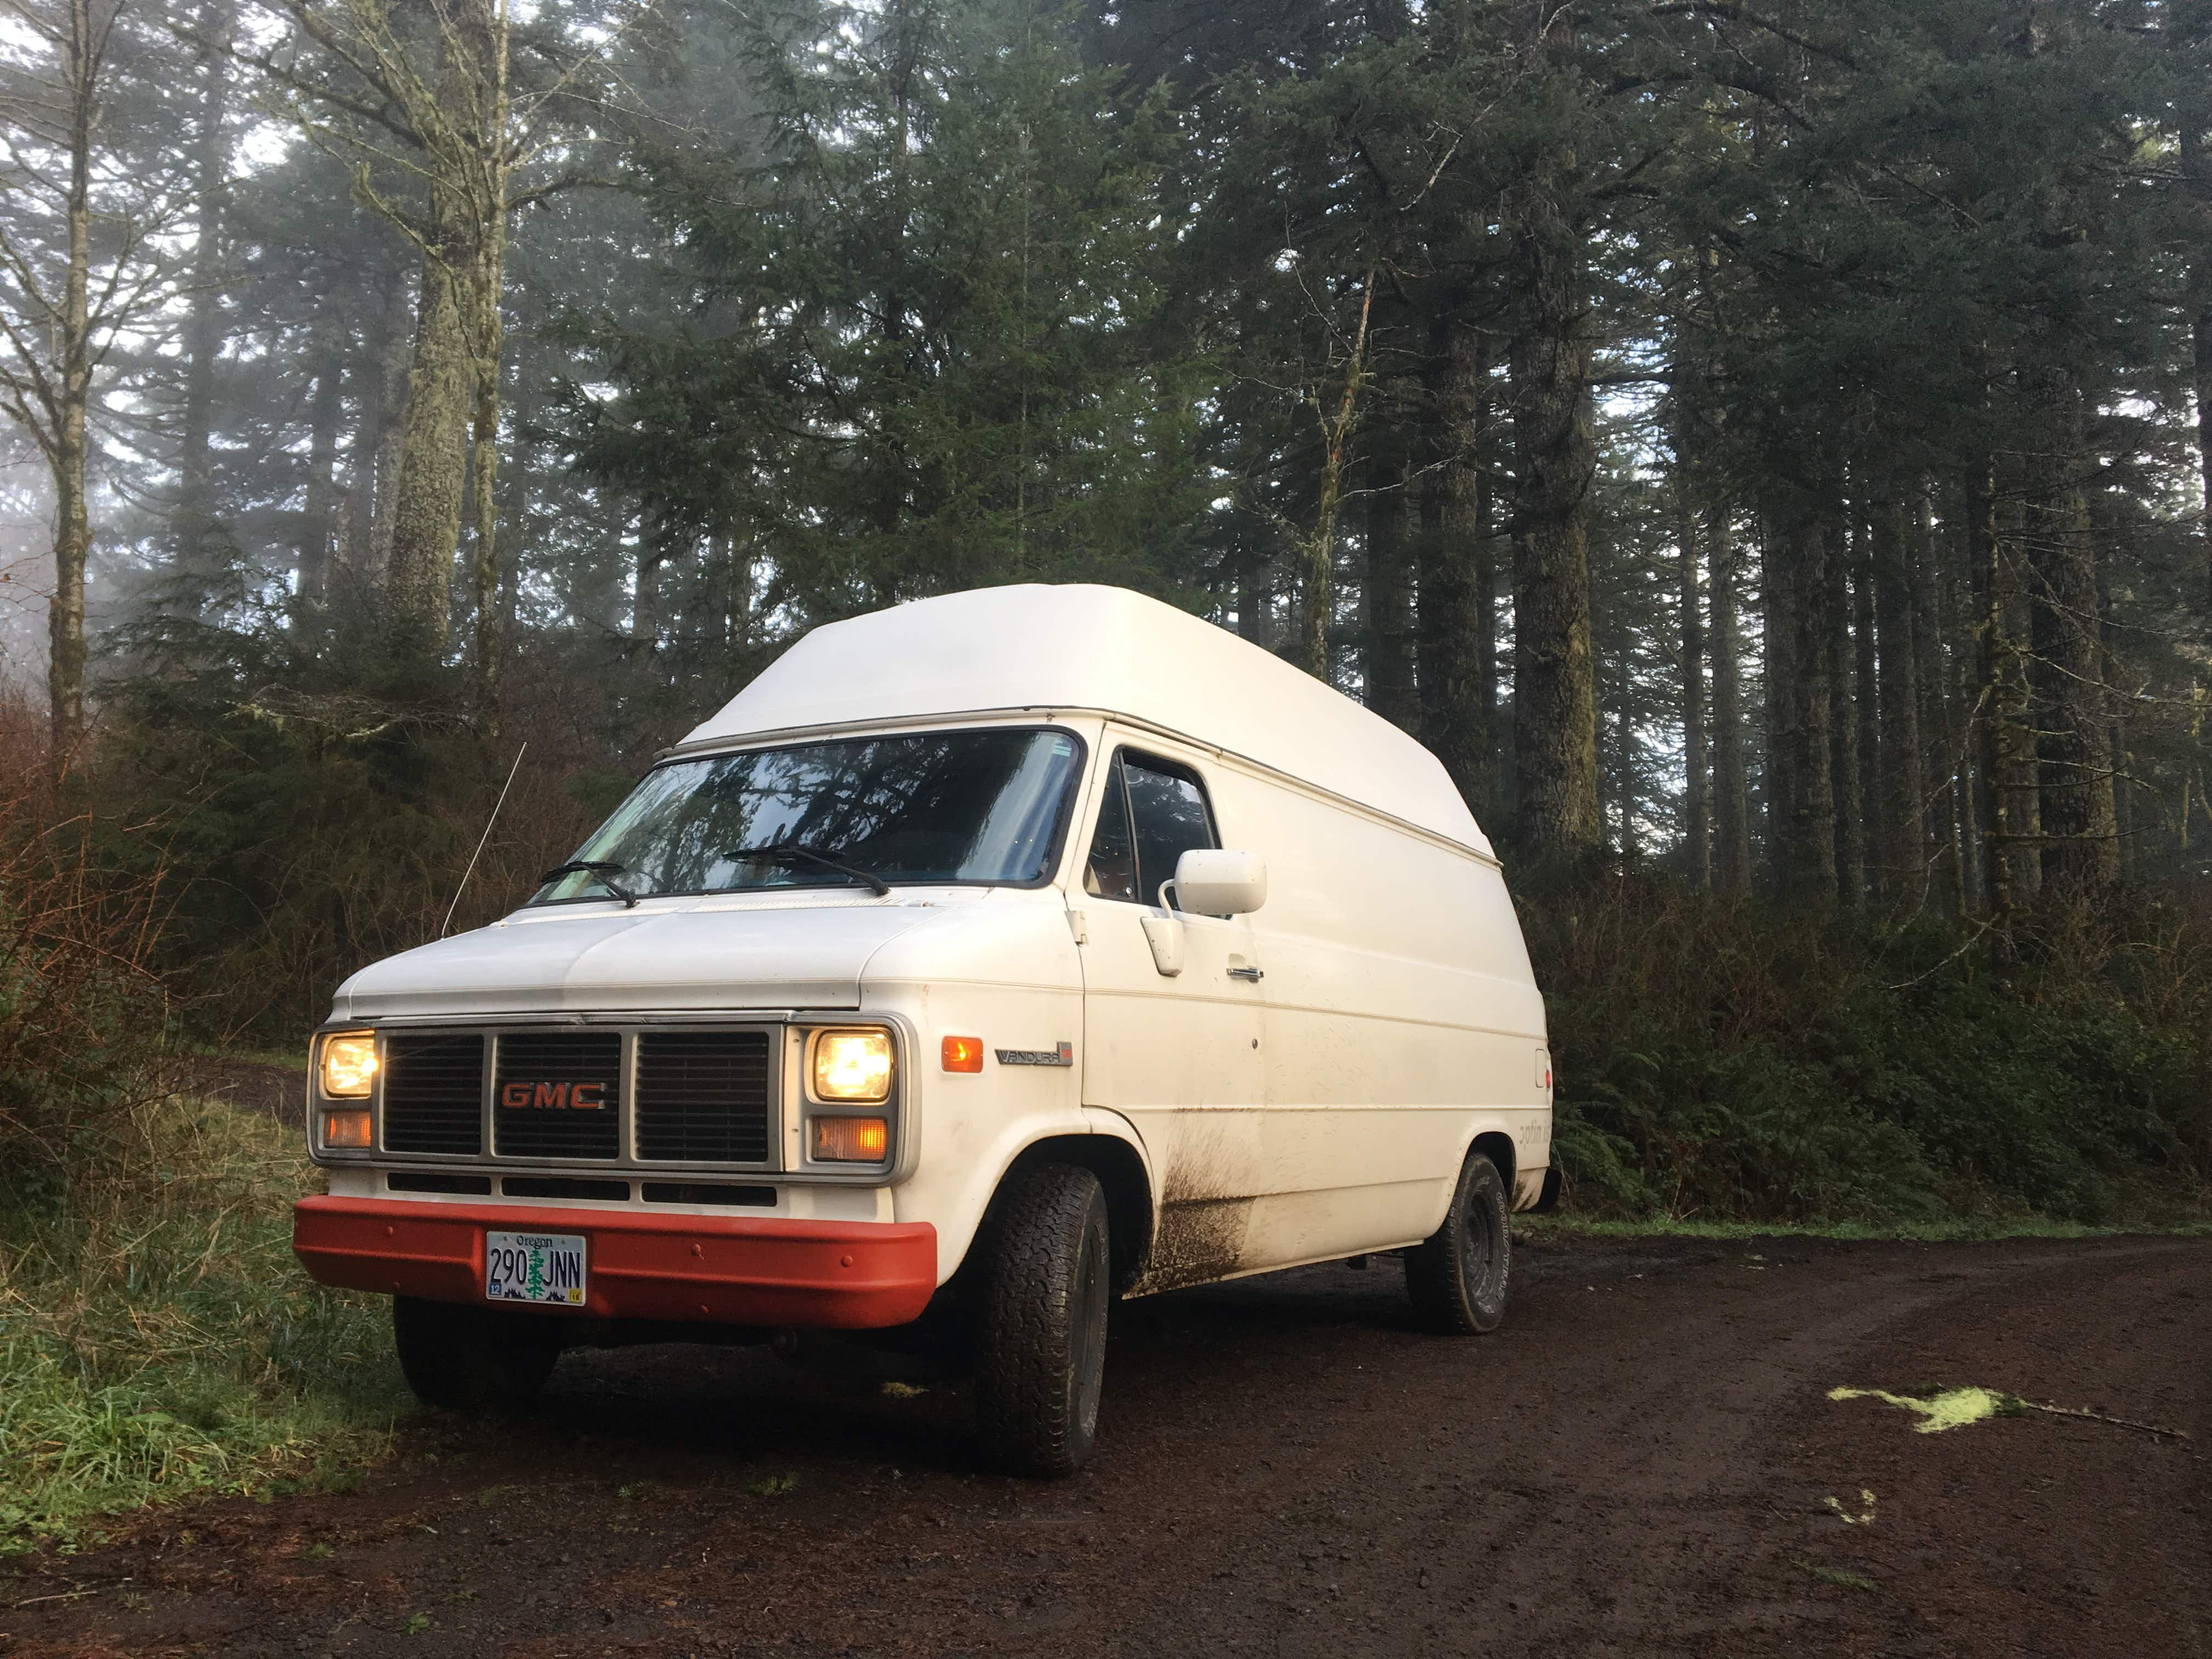 Britany Robinson's thirty year old GMC van is towed from a forest service road in snow-blanketed Montana. © Britany Robinson / Lonely Planet